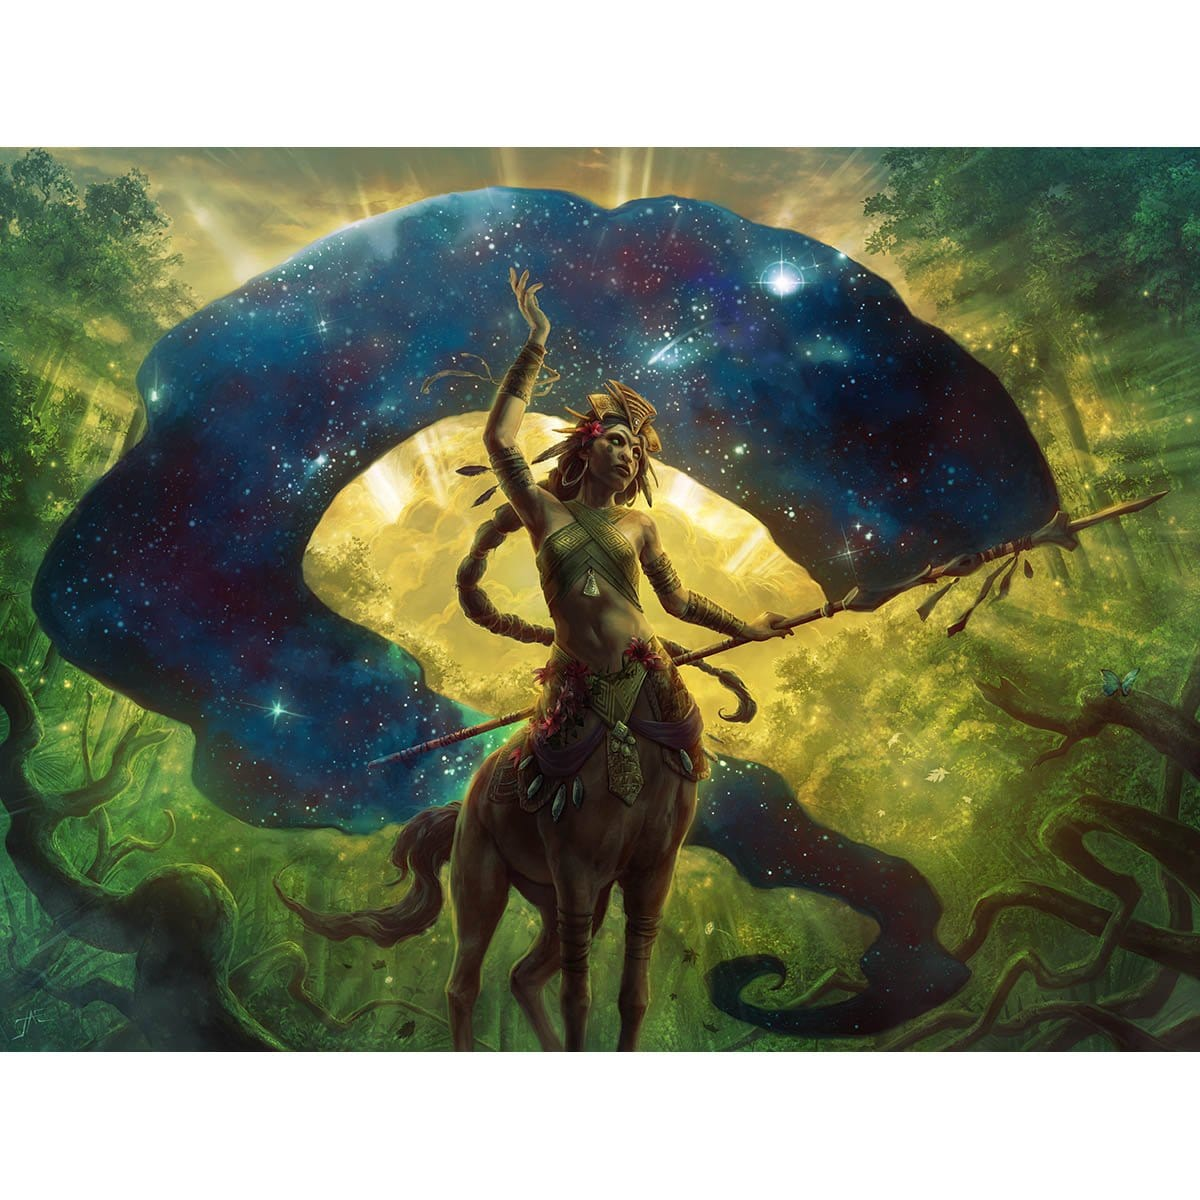 Herald of the Pantheon Print - Print - Original Magic Art - Accessories for Magic the Gathering and other card games